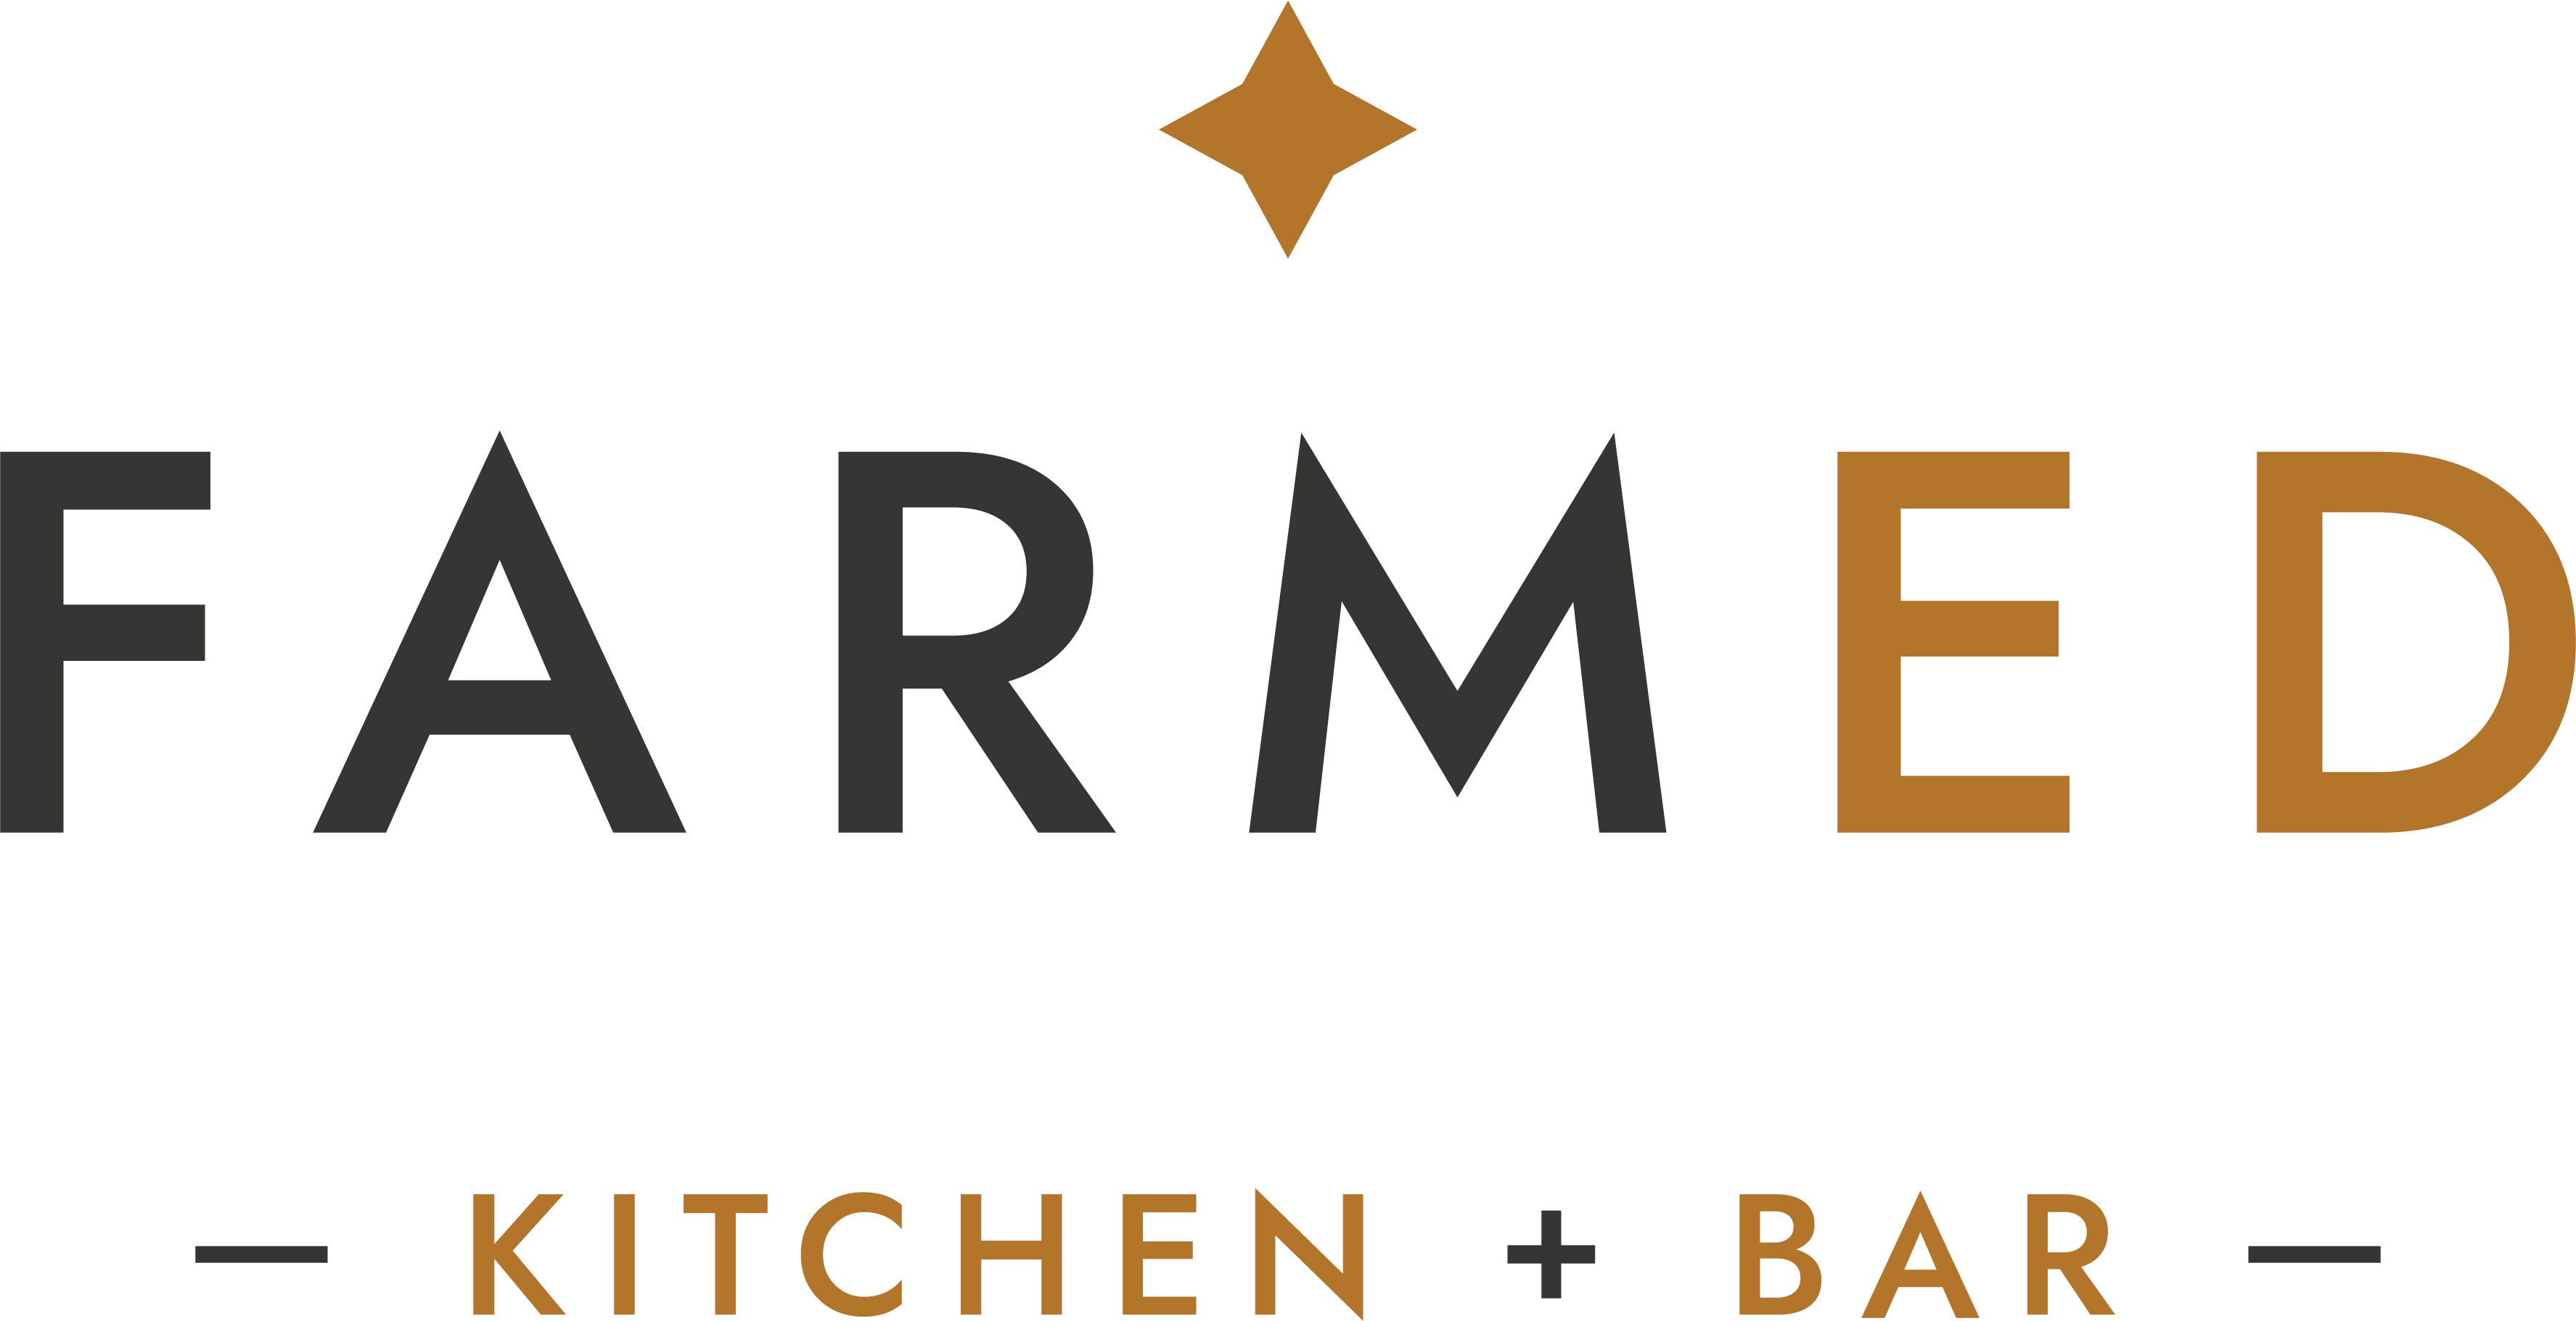 Farmed Kitchen + Bar